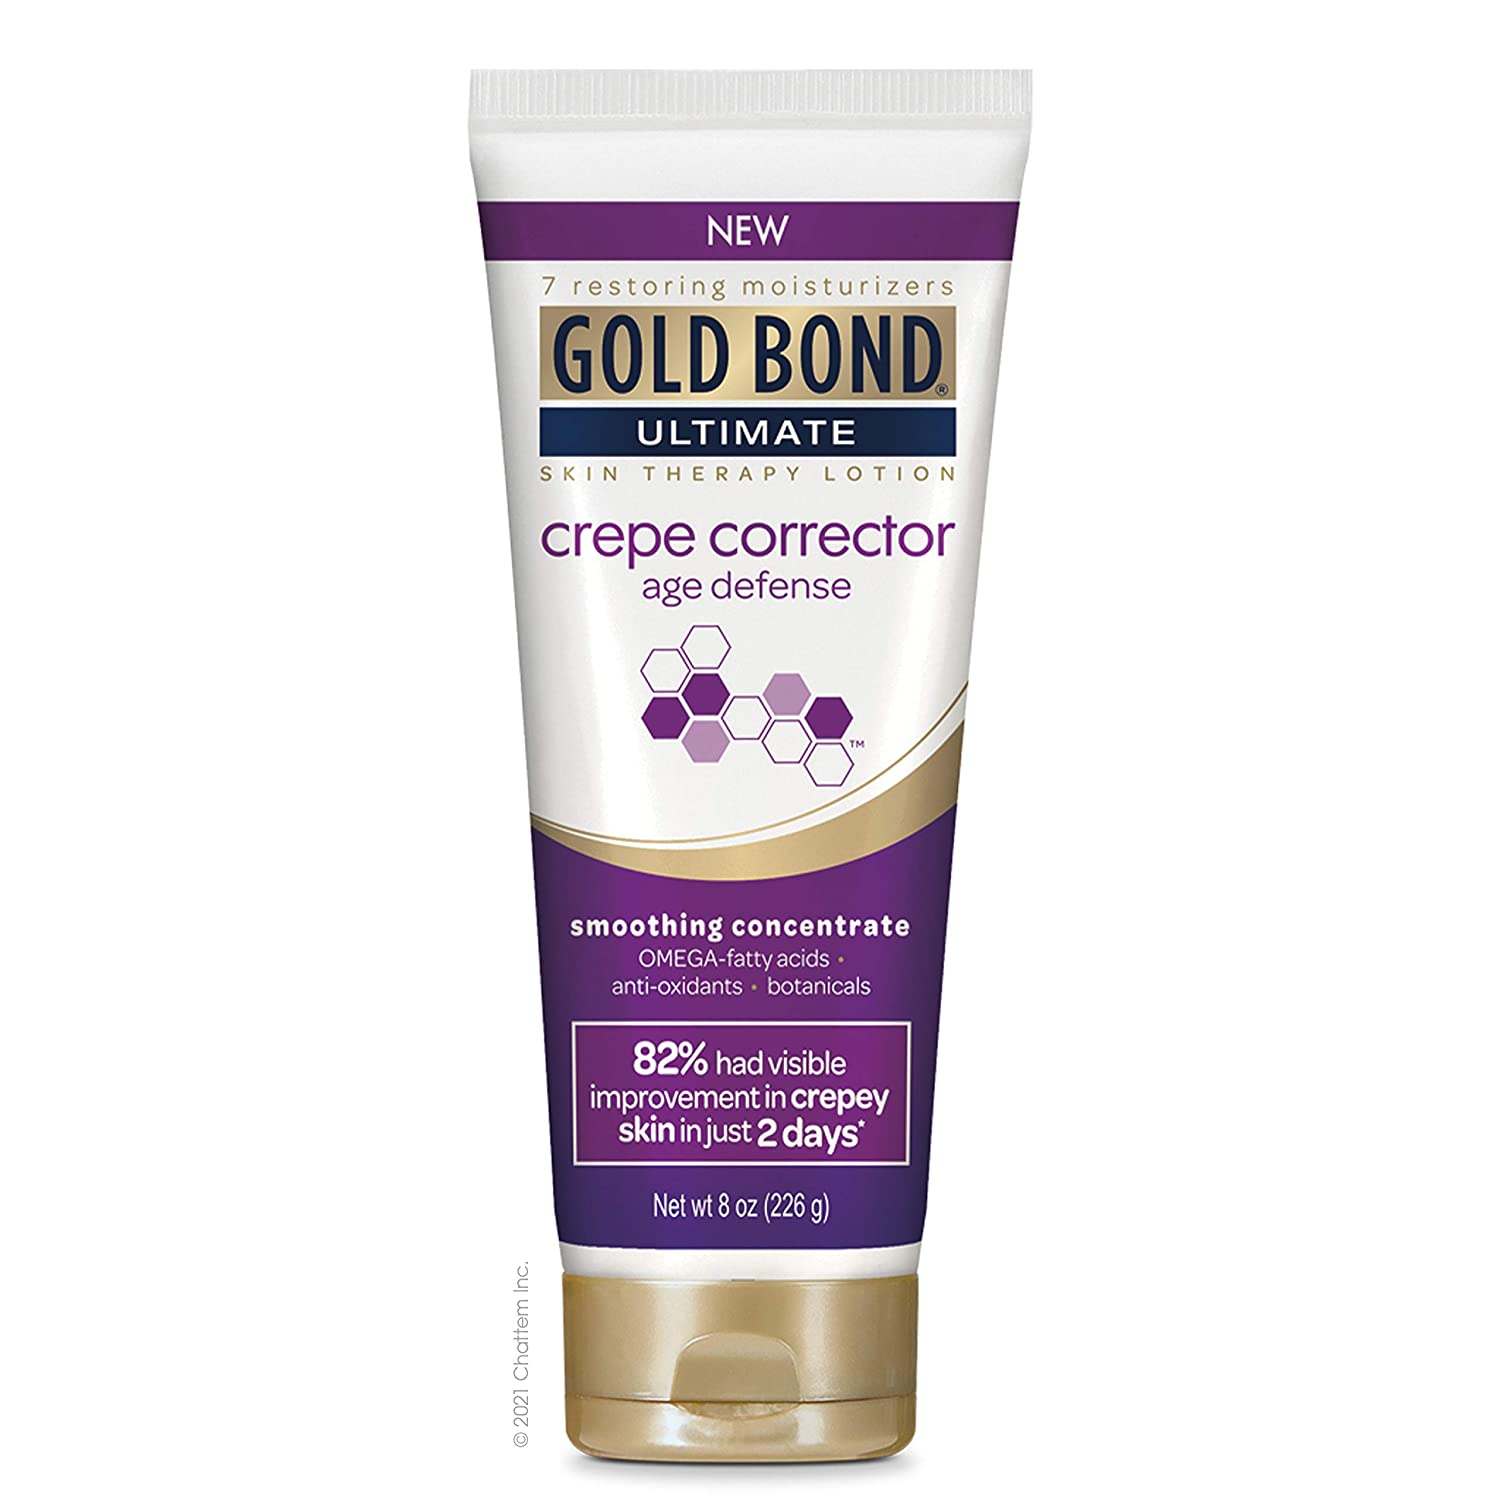 Gold Bond, Ultimate Crepe Corrector 8 oz Age Defense Smoothing Concentrate Skin Therapy Lotion : Beauty